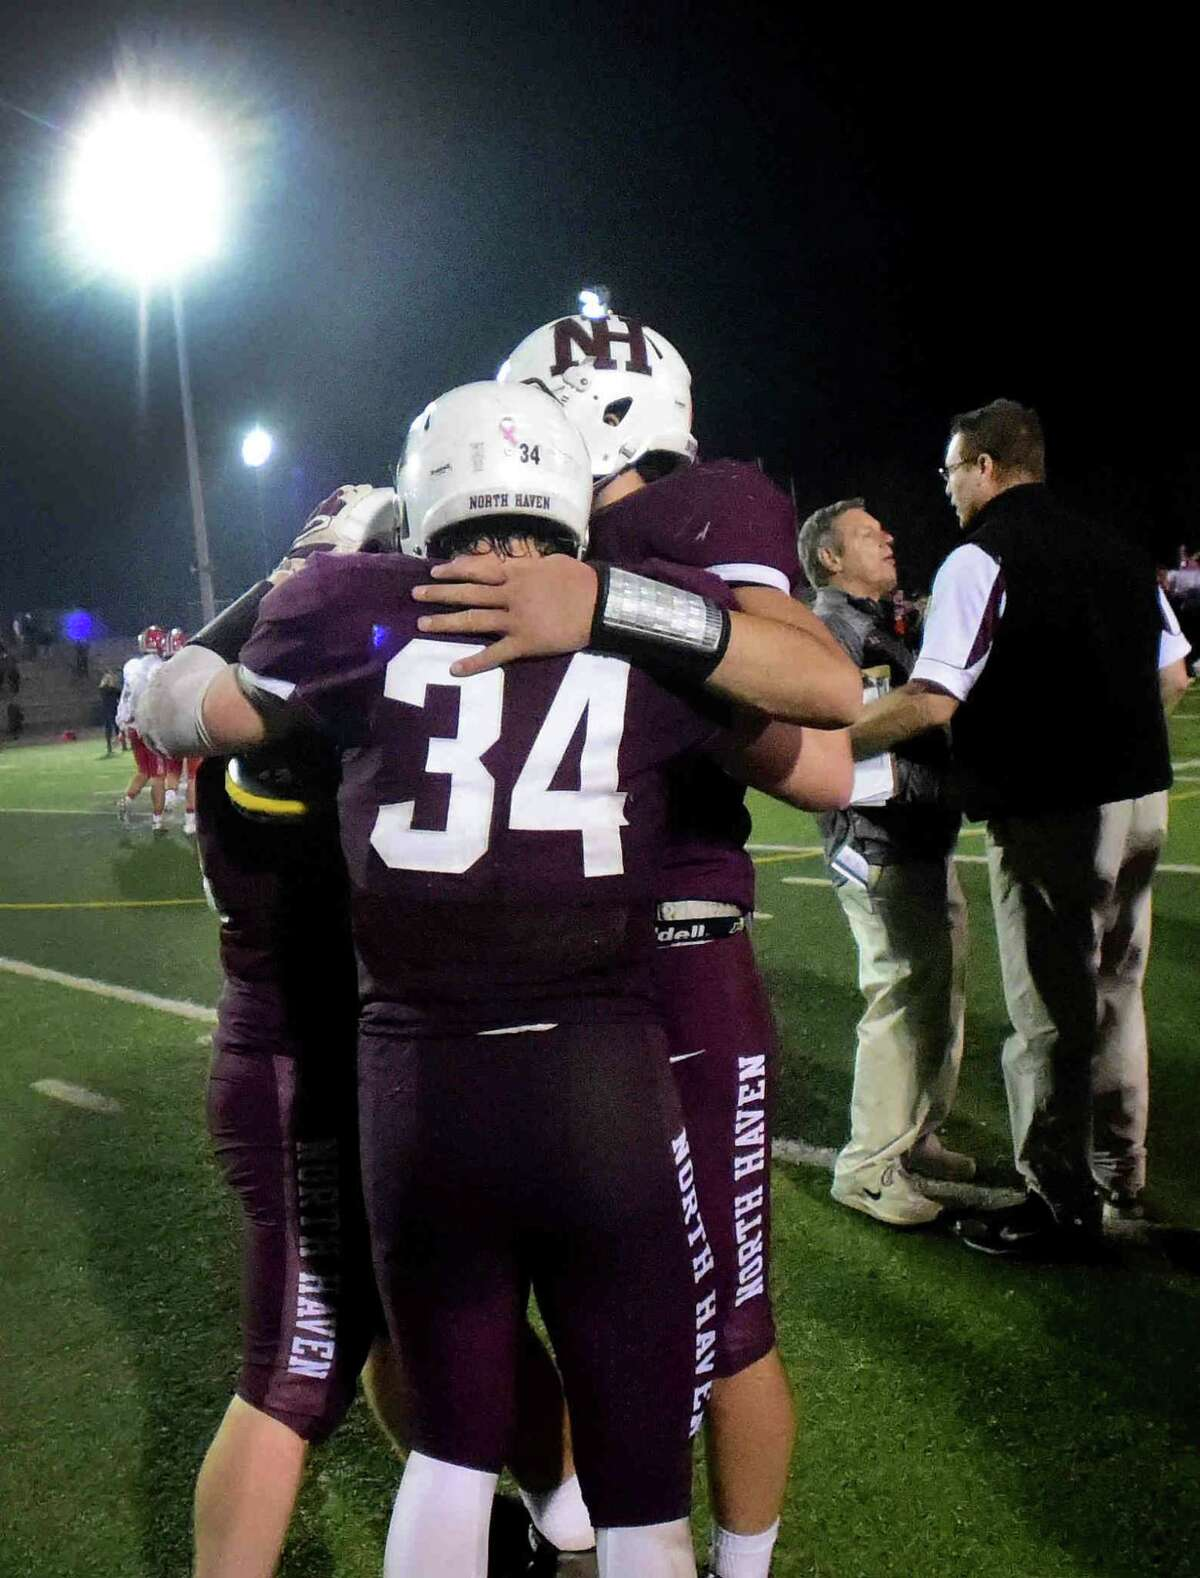 (Peter Hvizdak - New Haven Register) North Haven H.S. head football coach Anthony Sagnella, far right, congratulates New Canaan H.S. head football coach Lou Marinelli second from right, for his Class L state championship game win as North Haven players console each other Saturday, December 12 2015 at West Haven H.S.